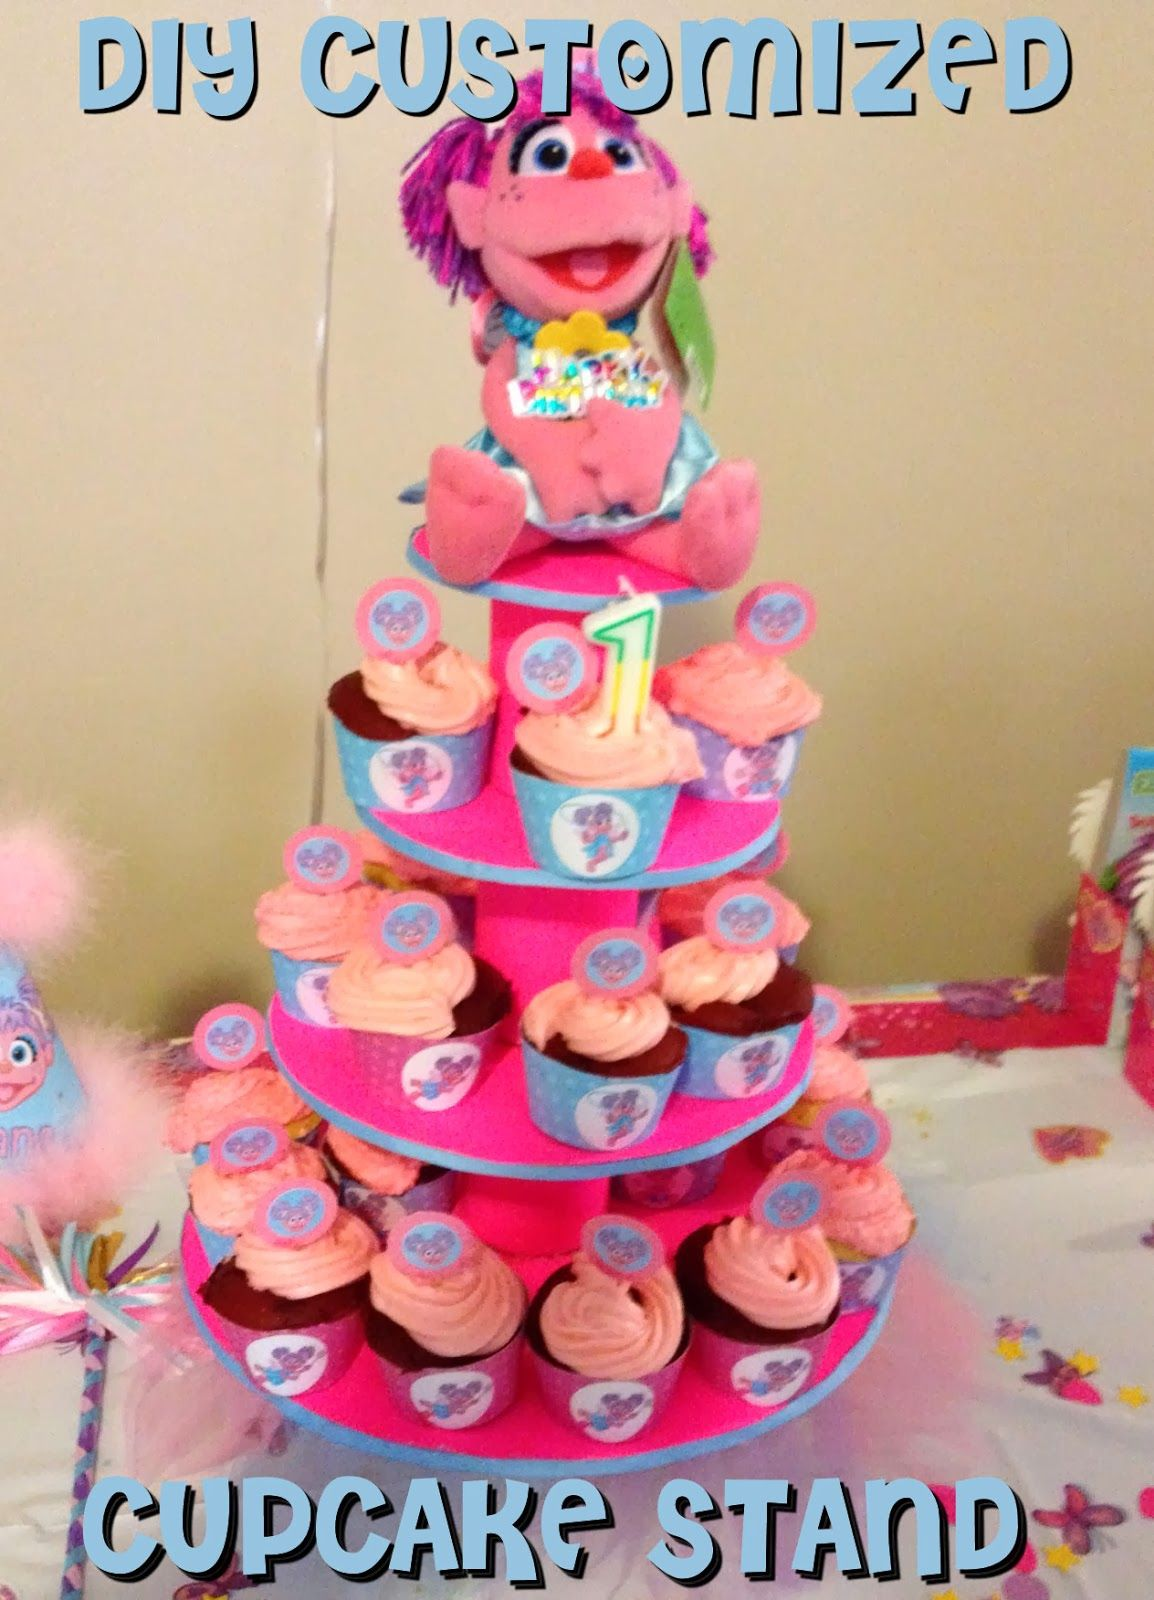 First Time Mom And Losing It DIY Abby Cadabby Birthday Party Customized Cupcake Stand Tutorial Under 7 To Make